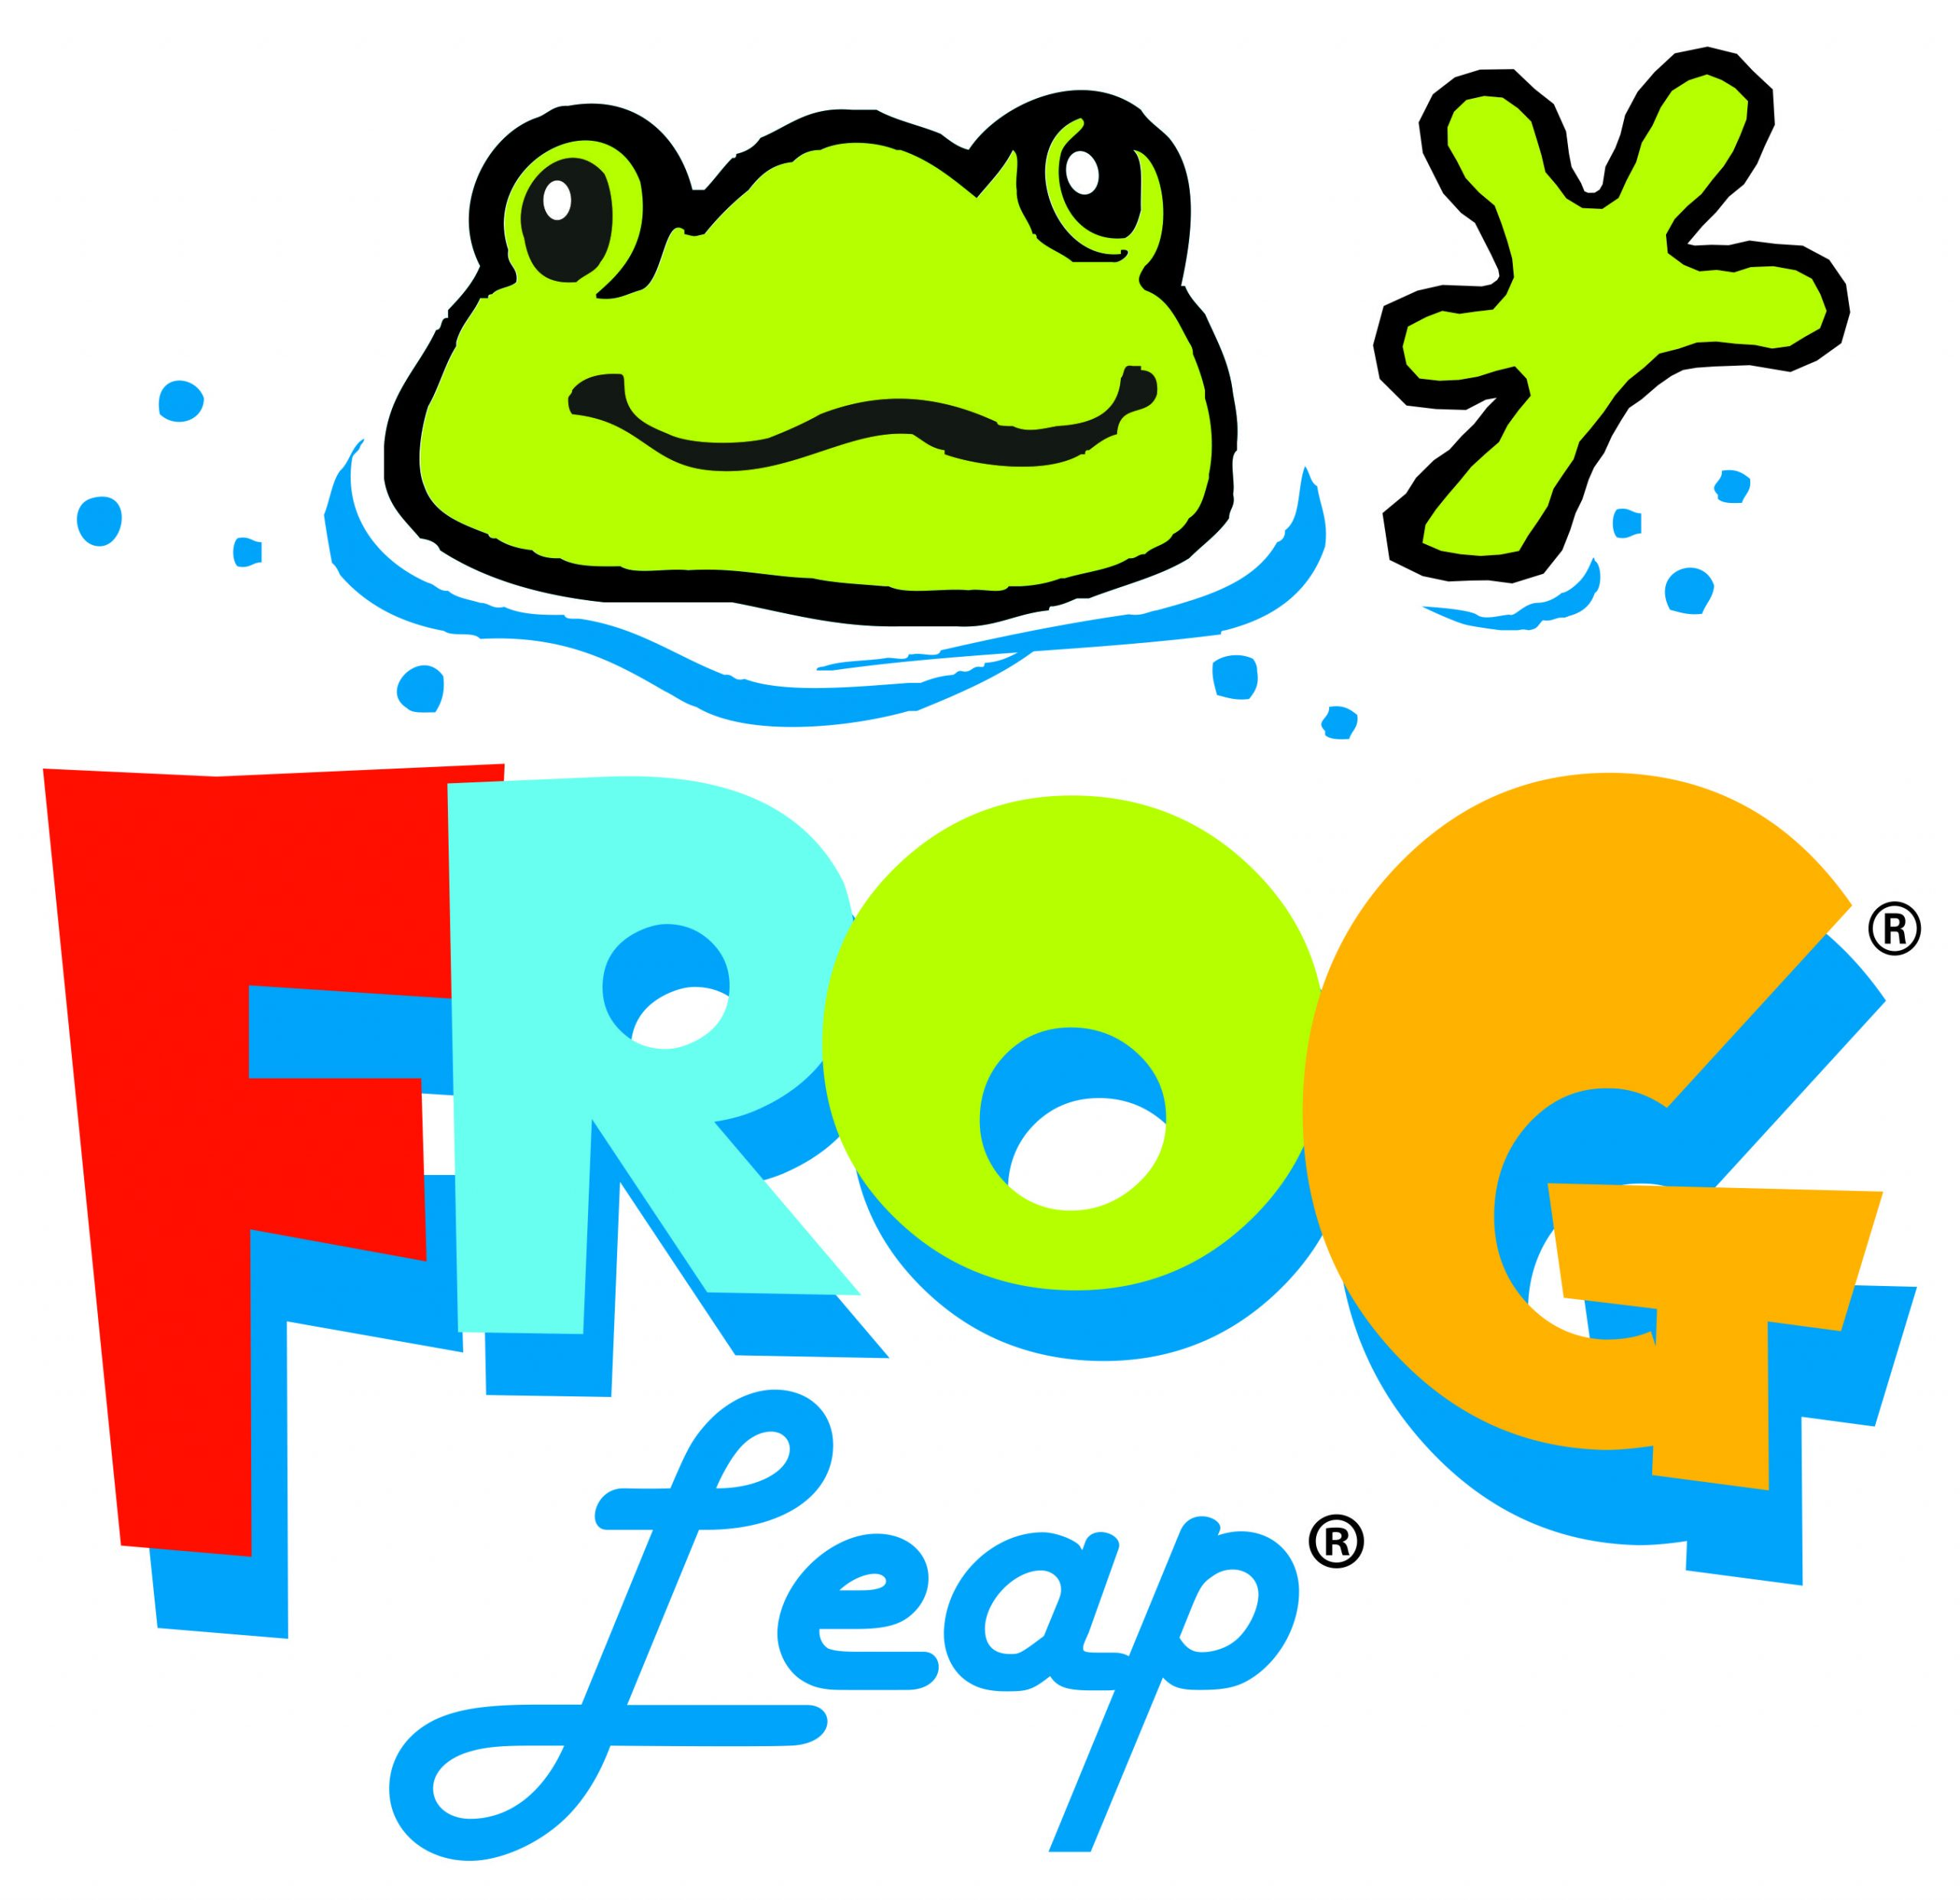 frog-leap